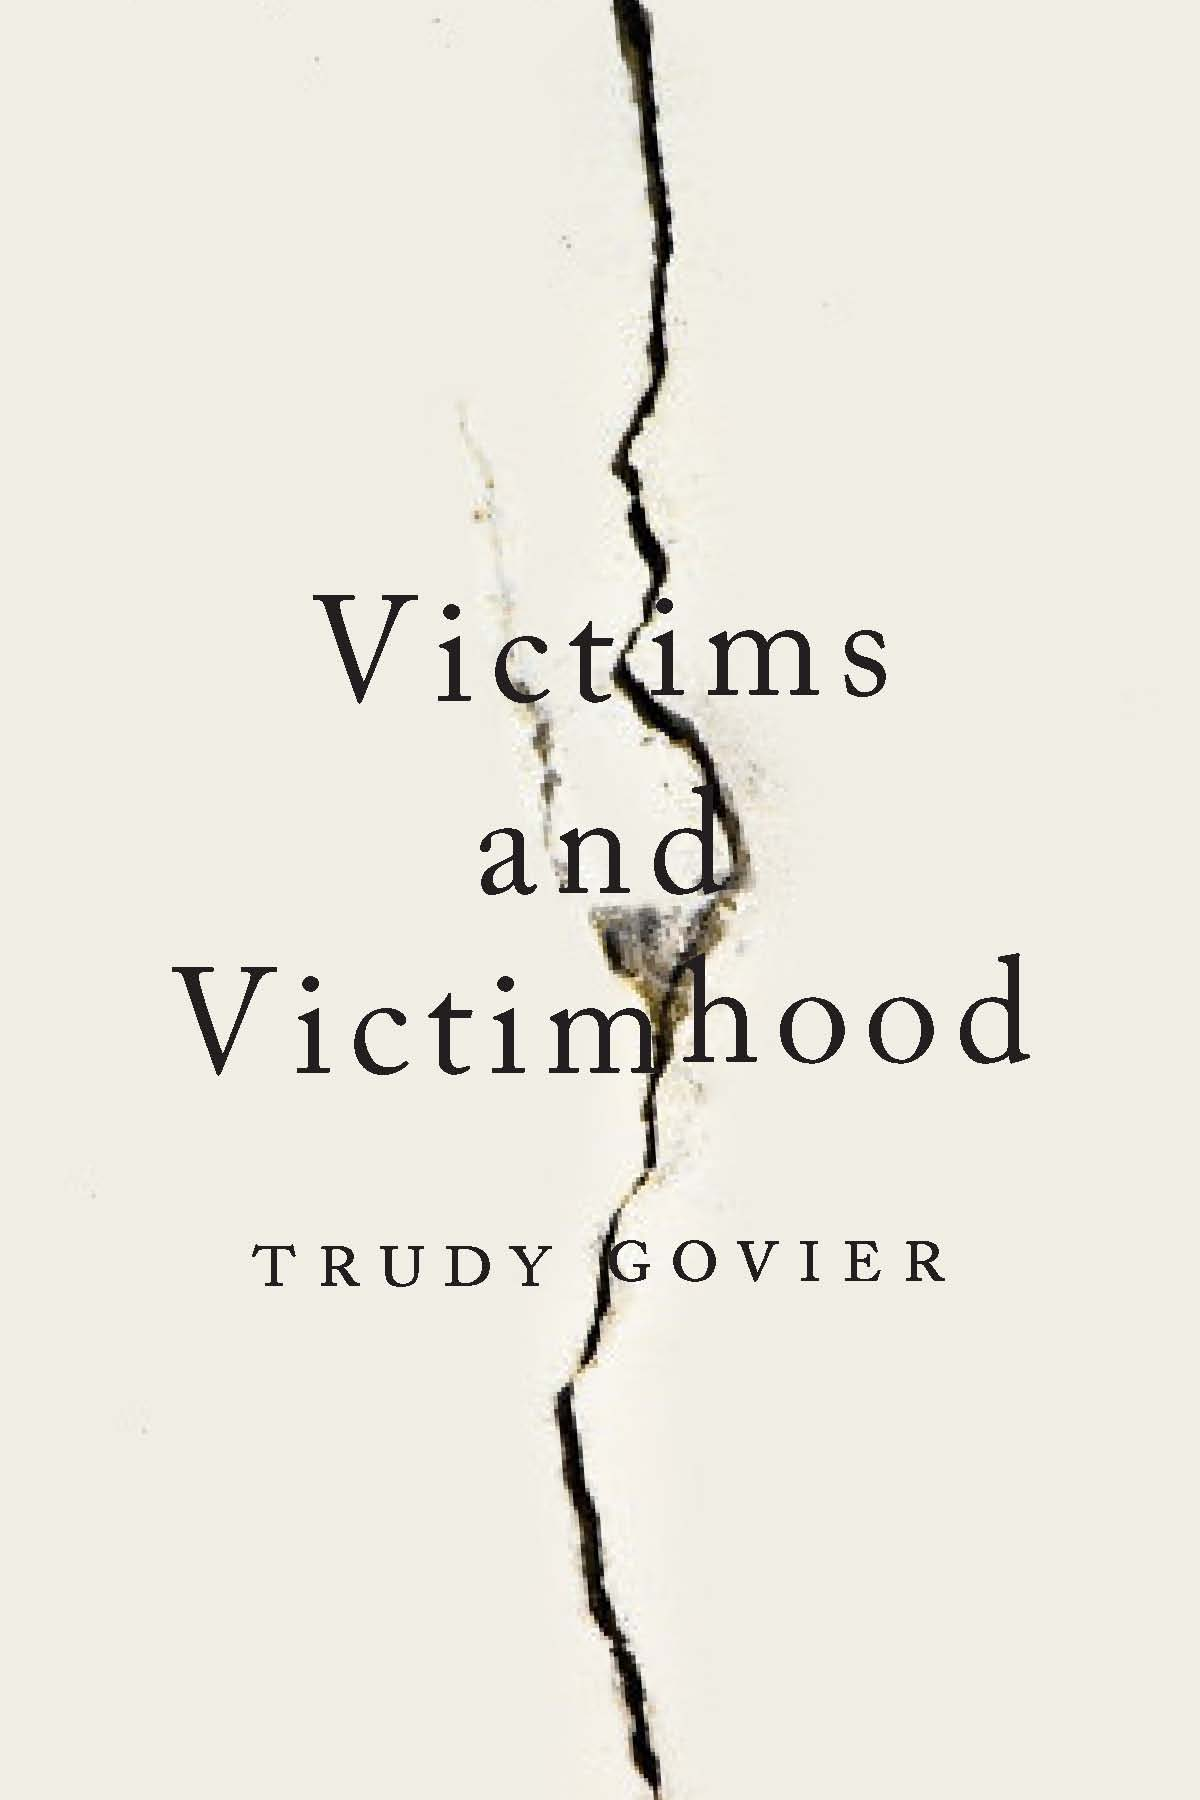 Need to answer a question on Victimhood and suffering?